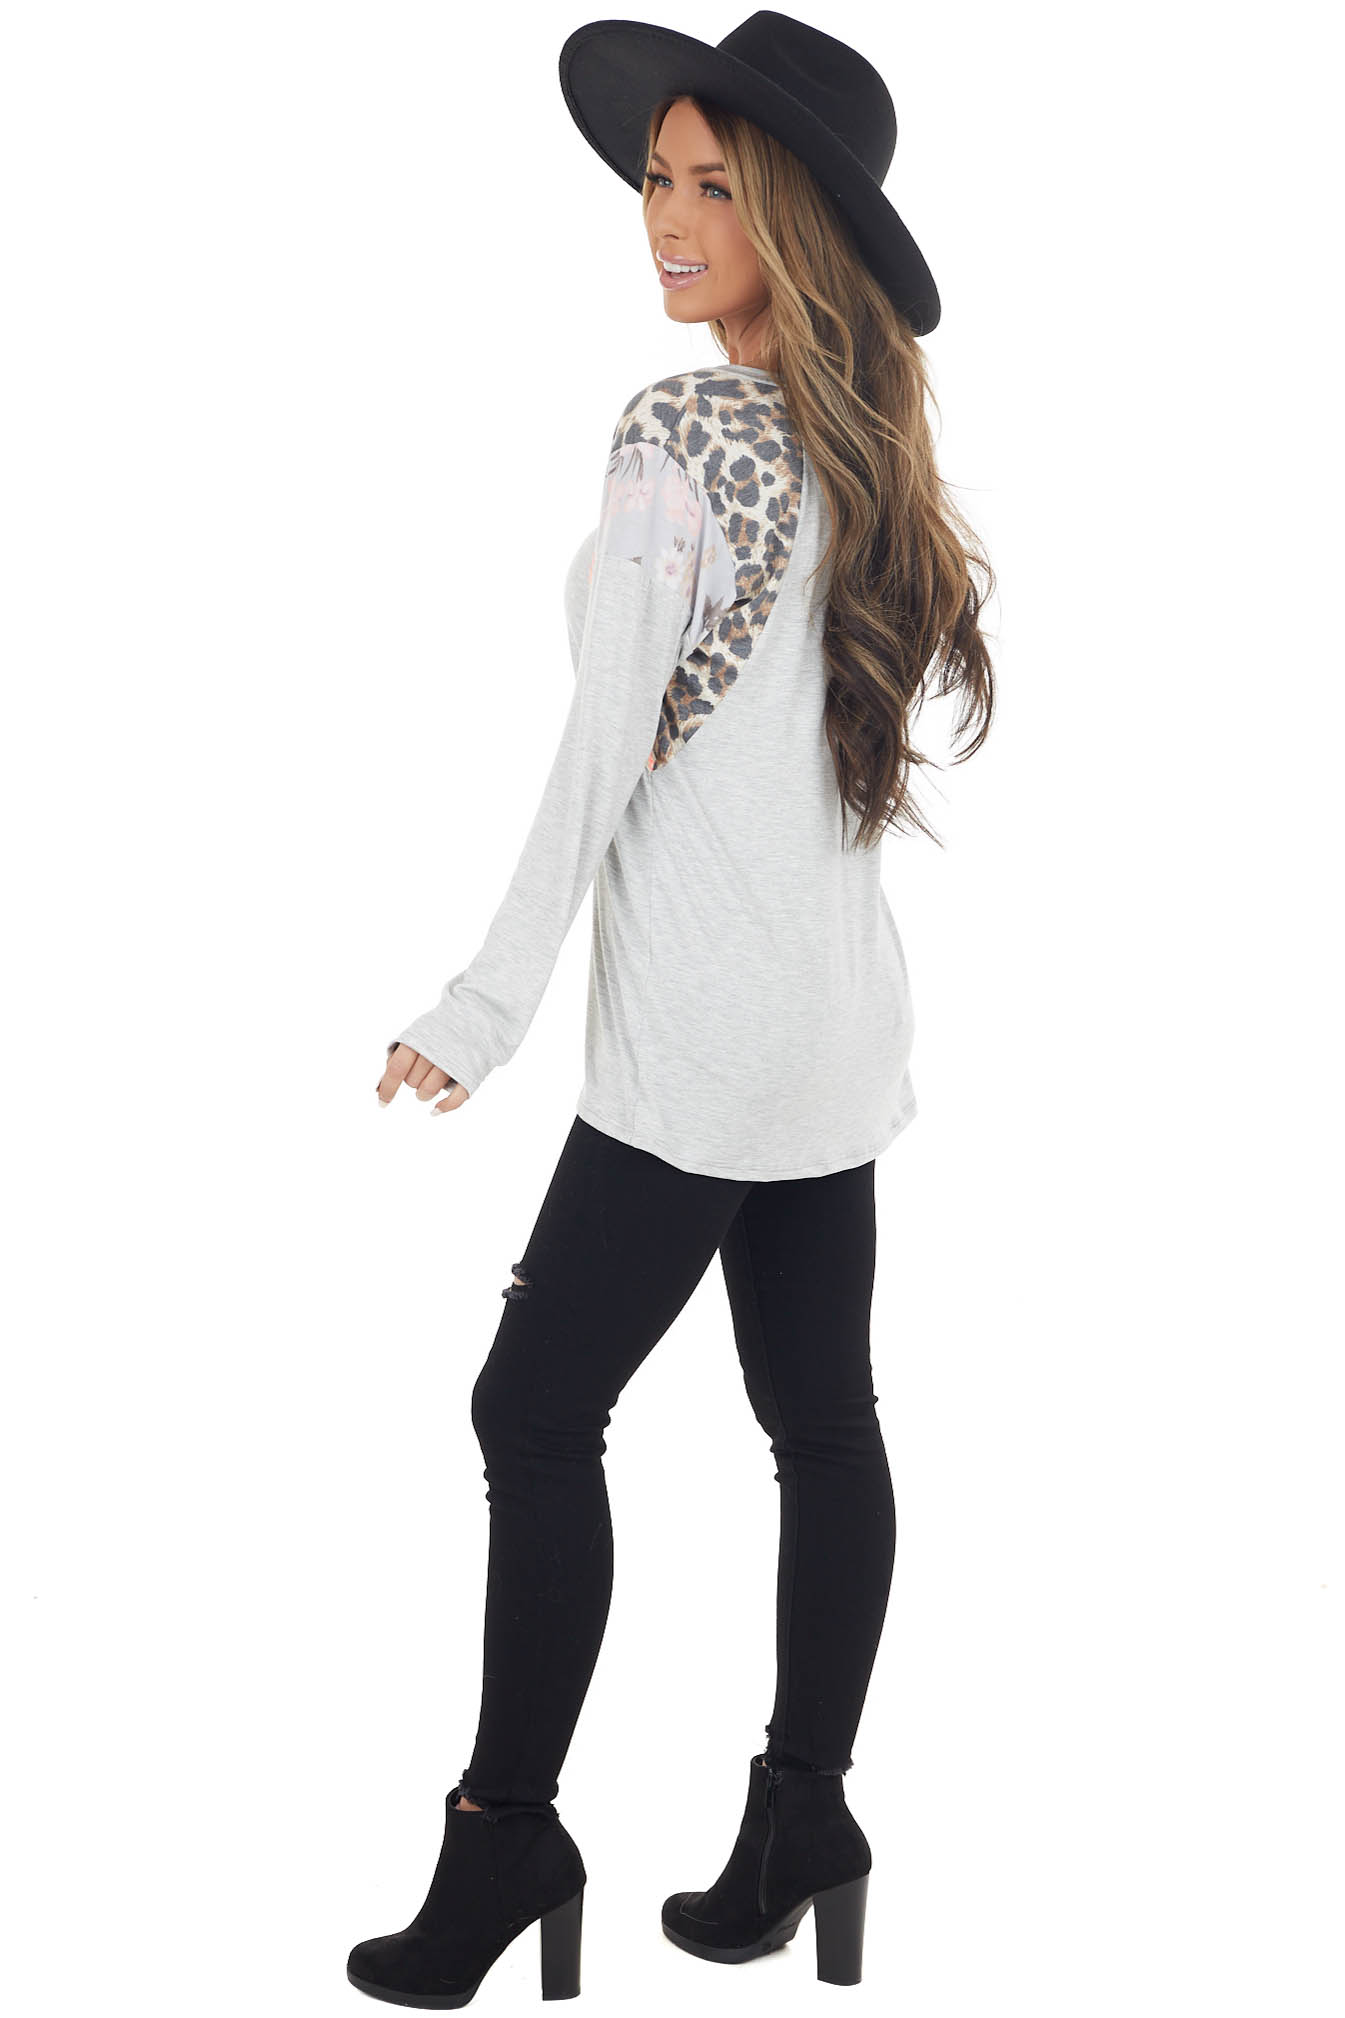 Heather Grey Stretchy Knit Top with Multiprint Shoulders